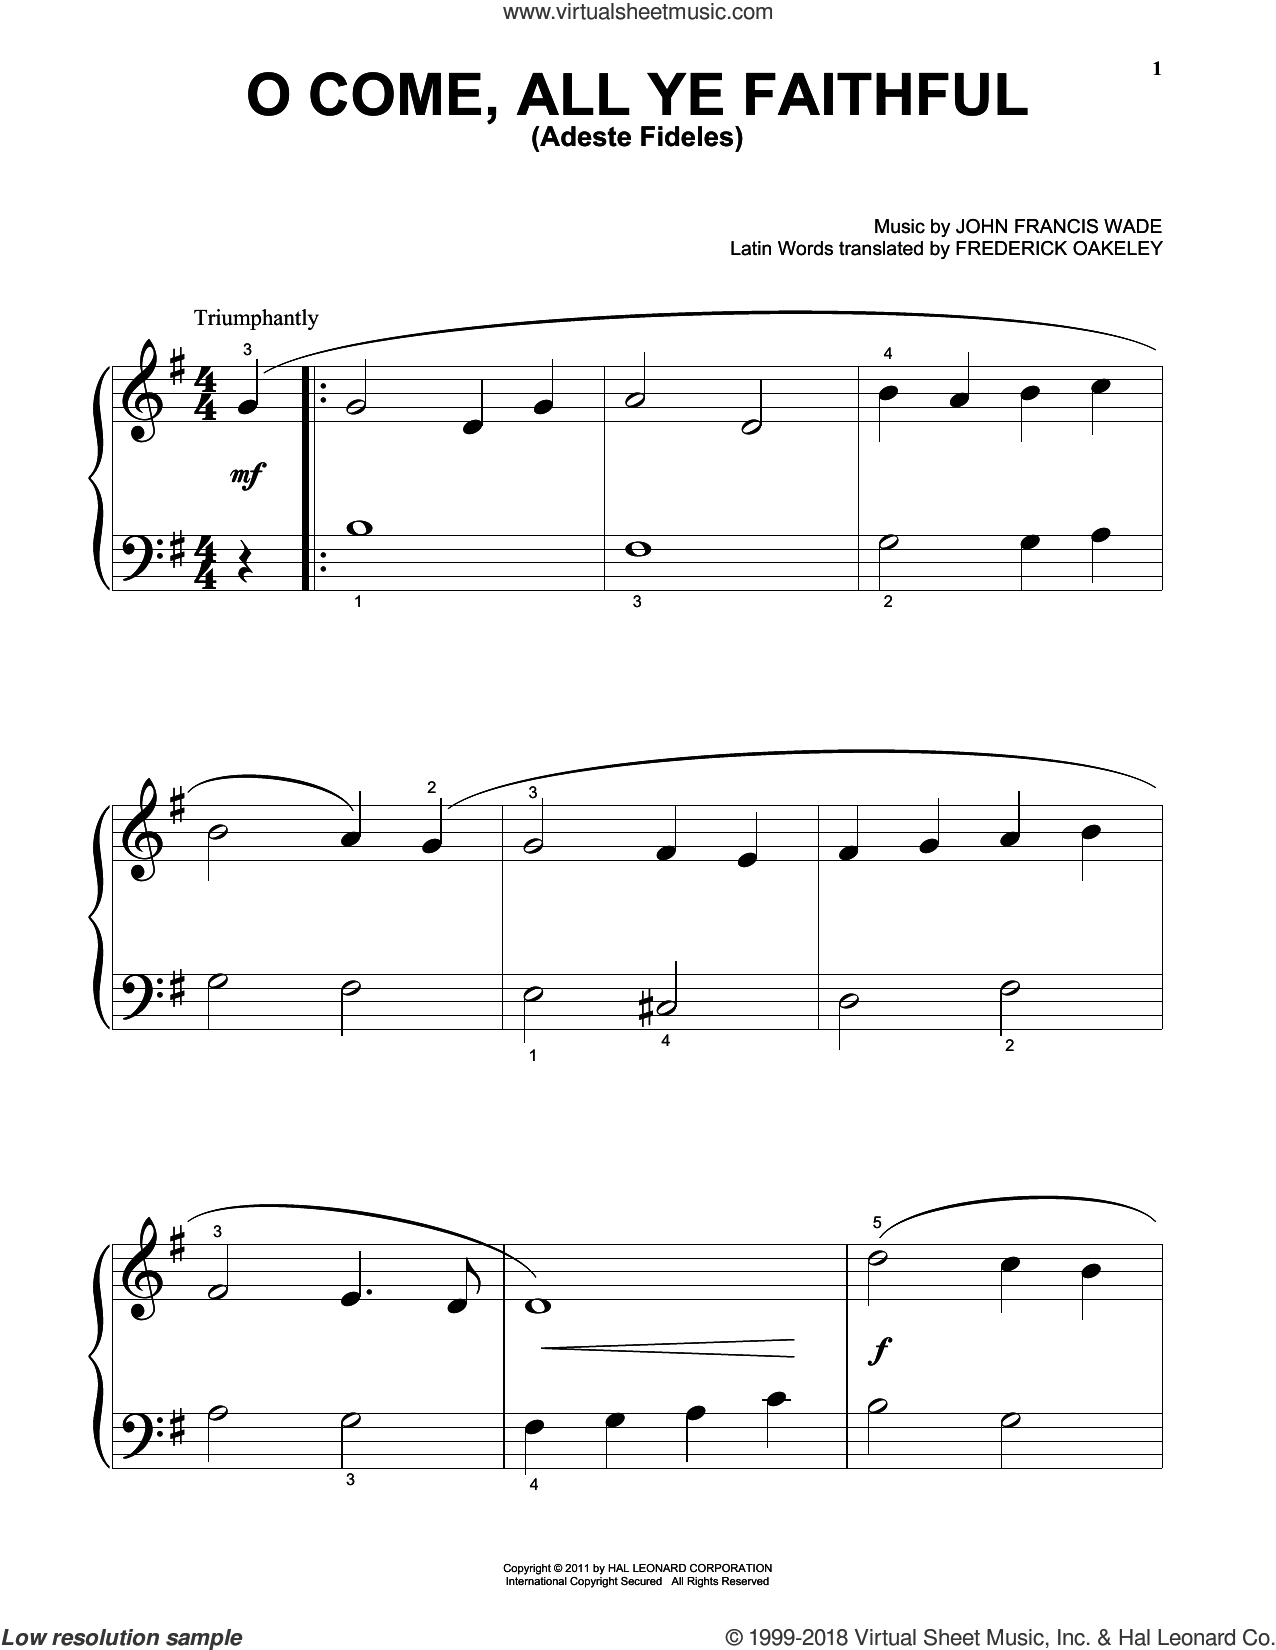 O Come, All Ye Faithful (Adeste Fideles) sheet music for piano solo (big note book) by John Francis Wade